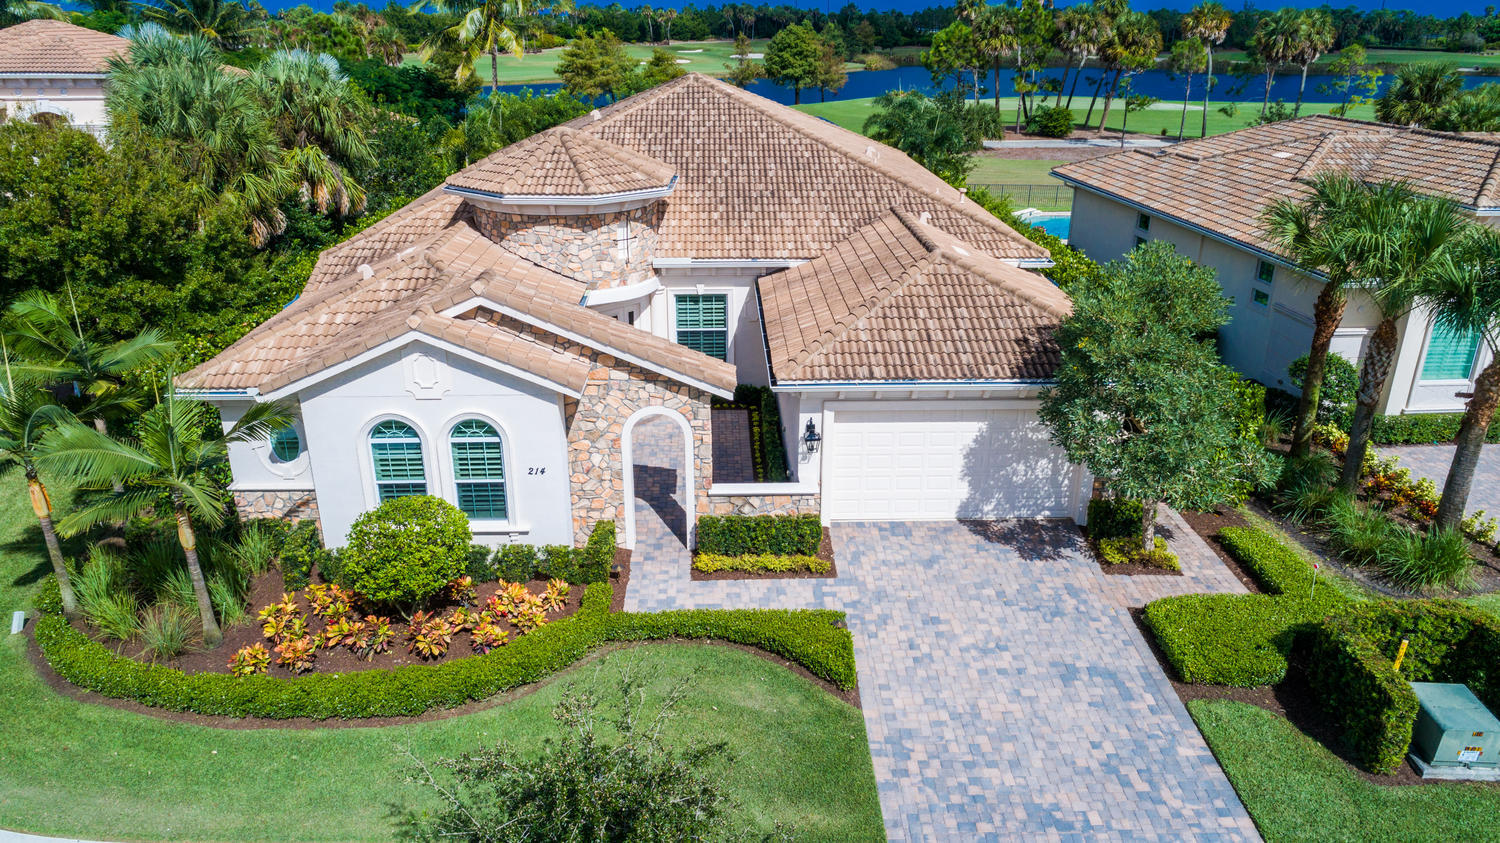 New Home for sale at 214 Sonata Drive in Jupiter